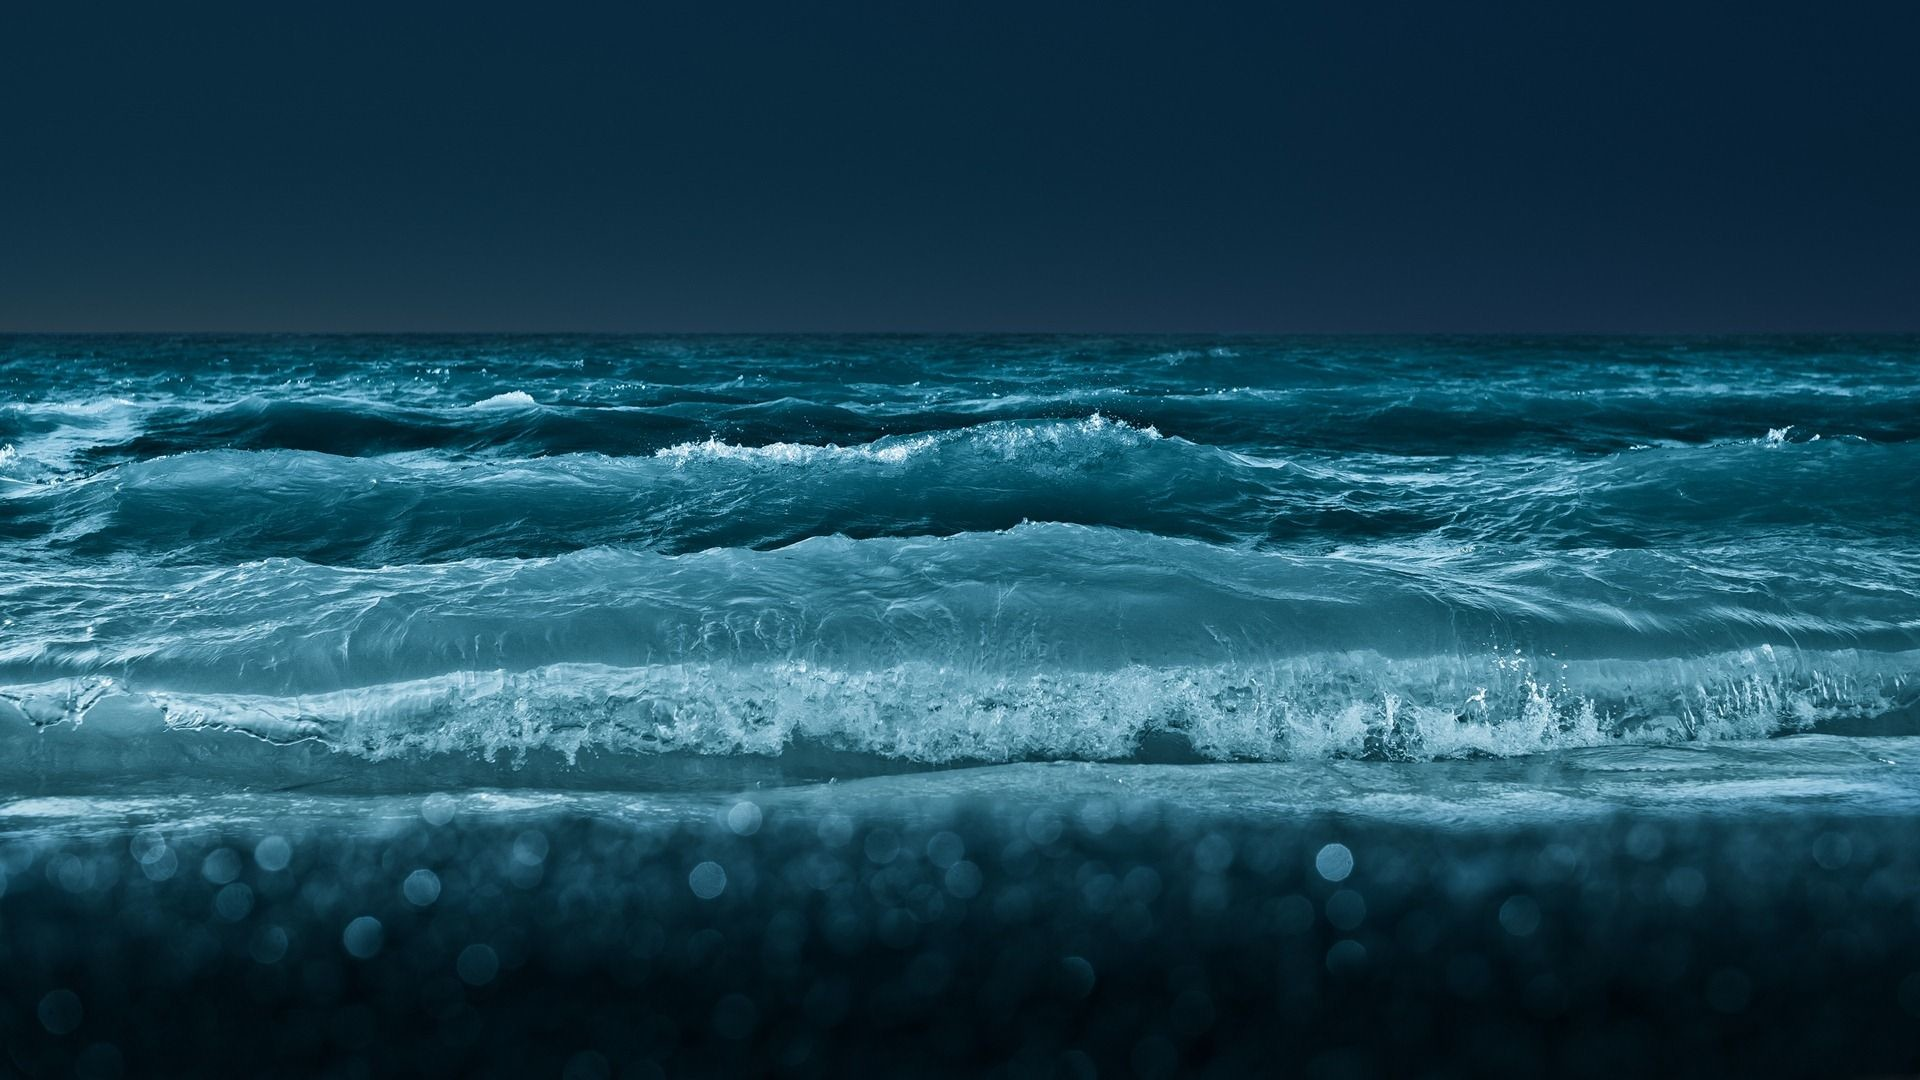 1920x1080 Ocean Wallpaper High Resolution · Under ...